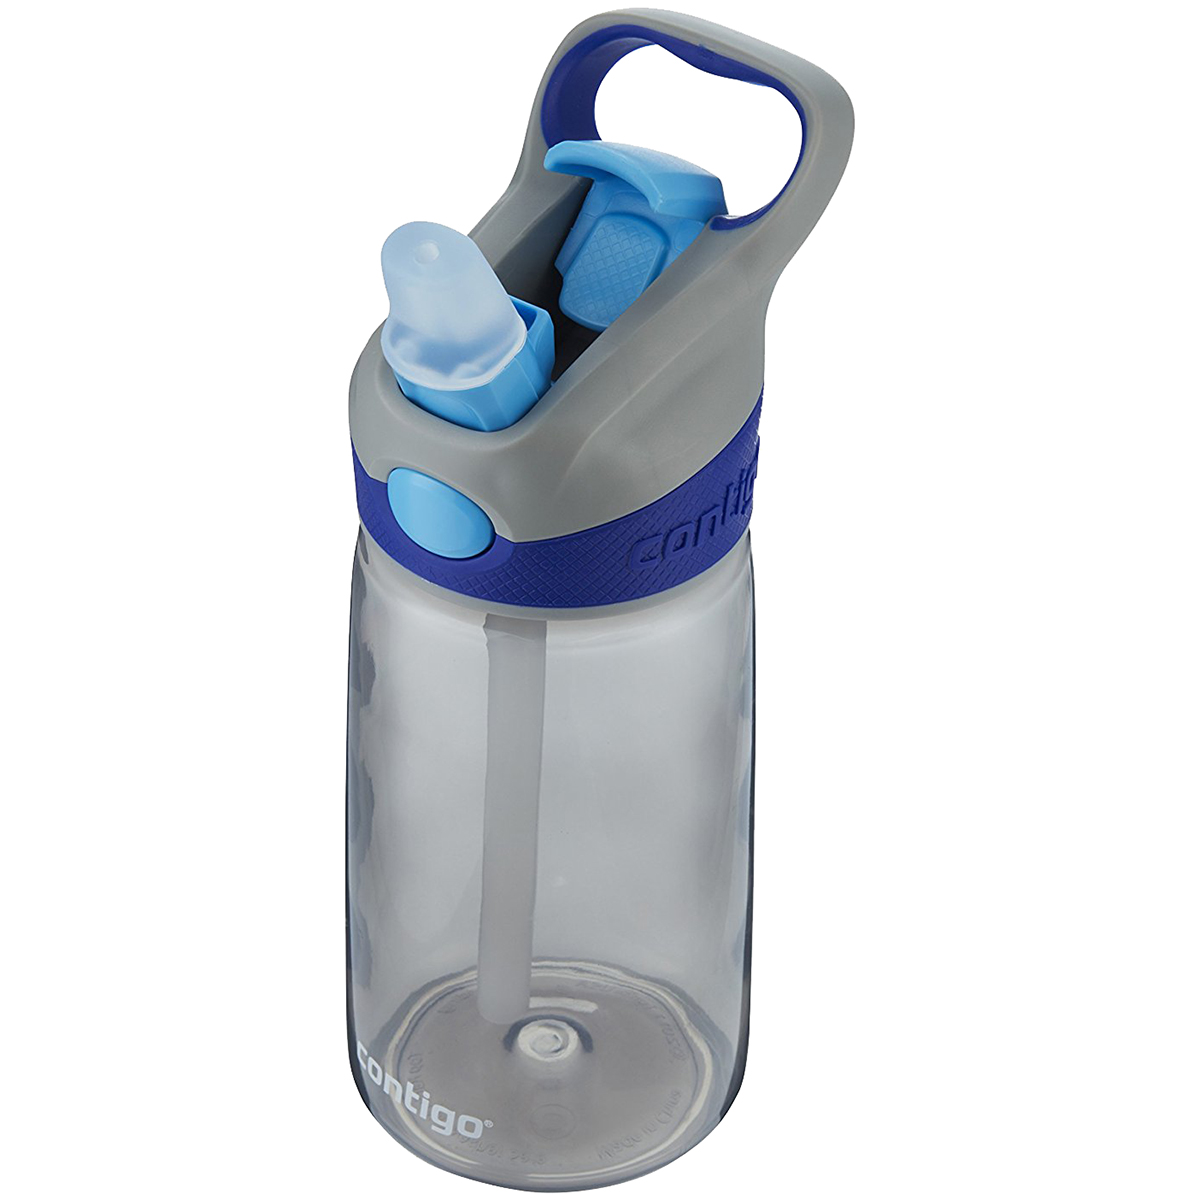 Contigo-14-oz-Kid-039-s-Striker-Autospout-Water-Bottle miniature 46